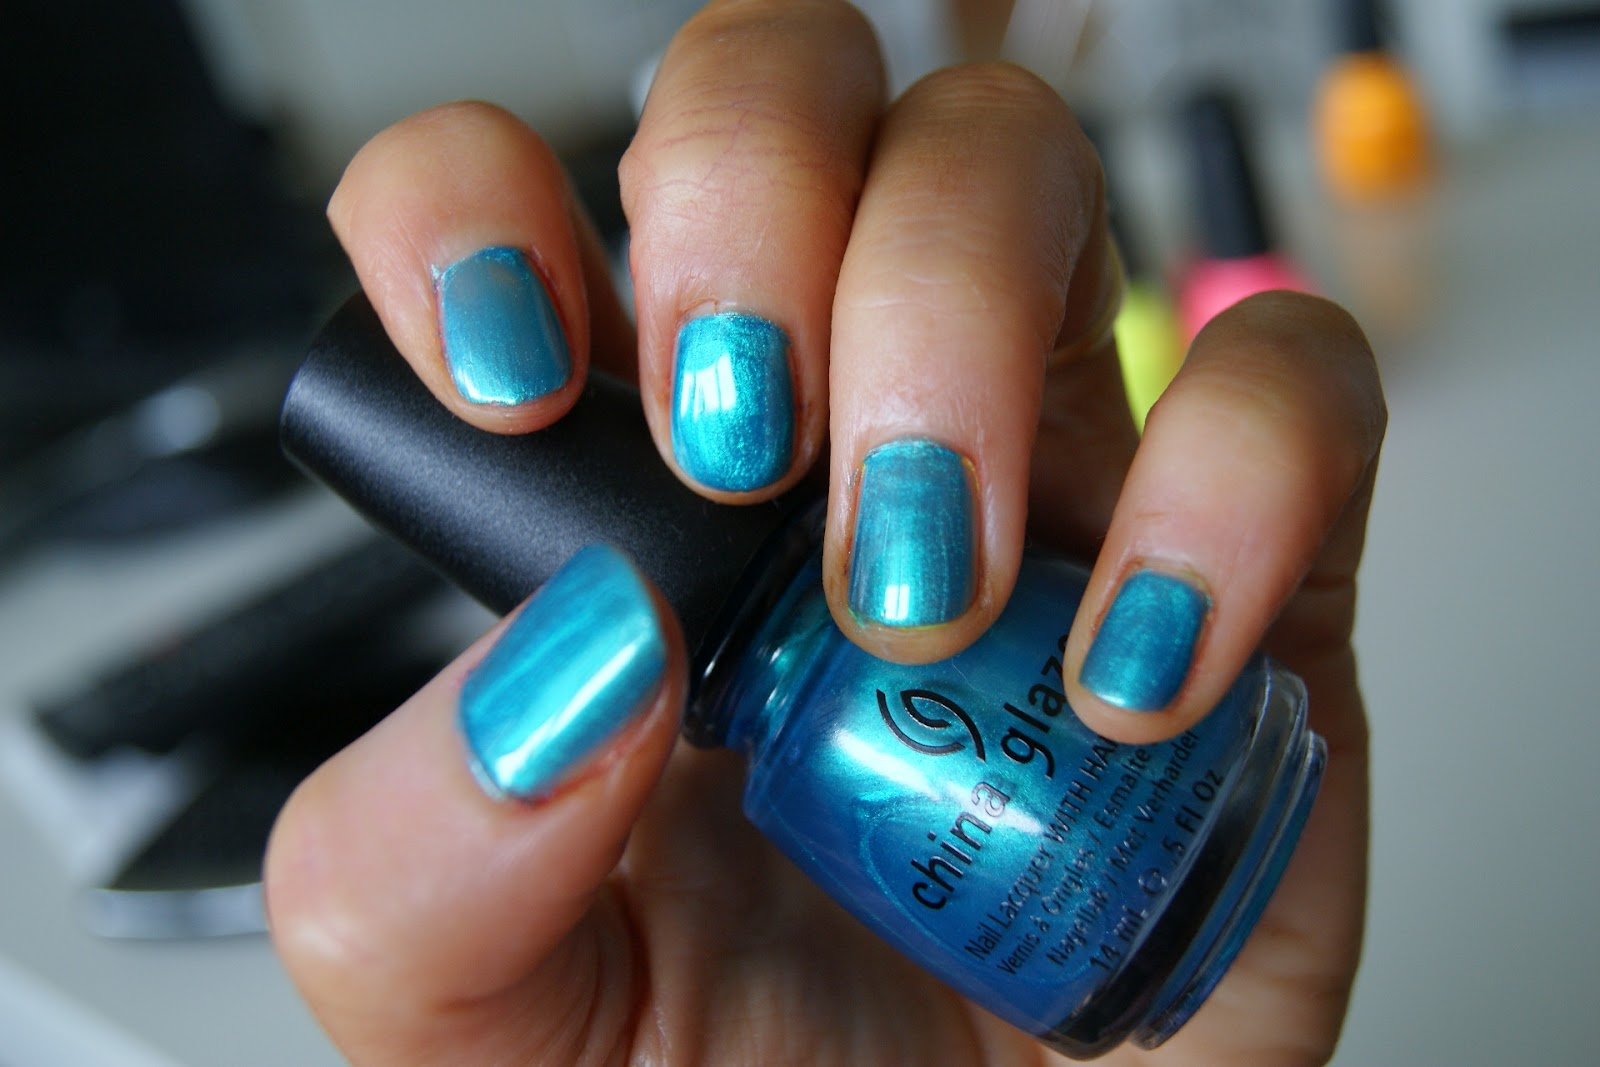 Fashion Styles Blog: Blue nails - Beauty and the beach